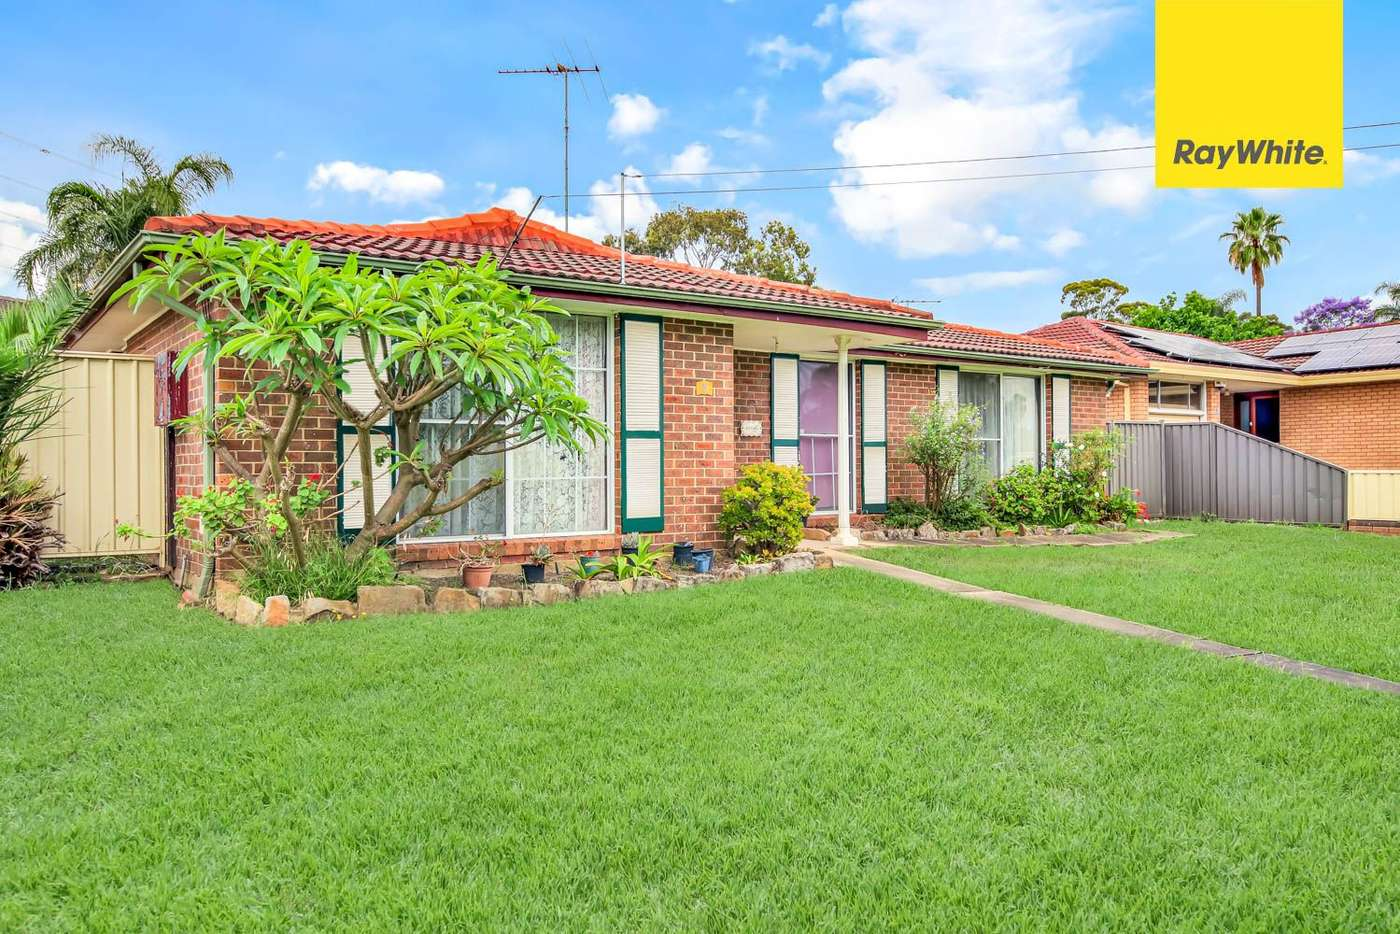 Main view of Homely house listing, 6 Roche Grove, Shalvey NSW 2770